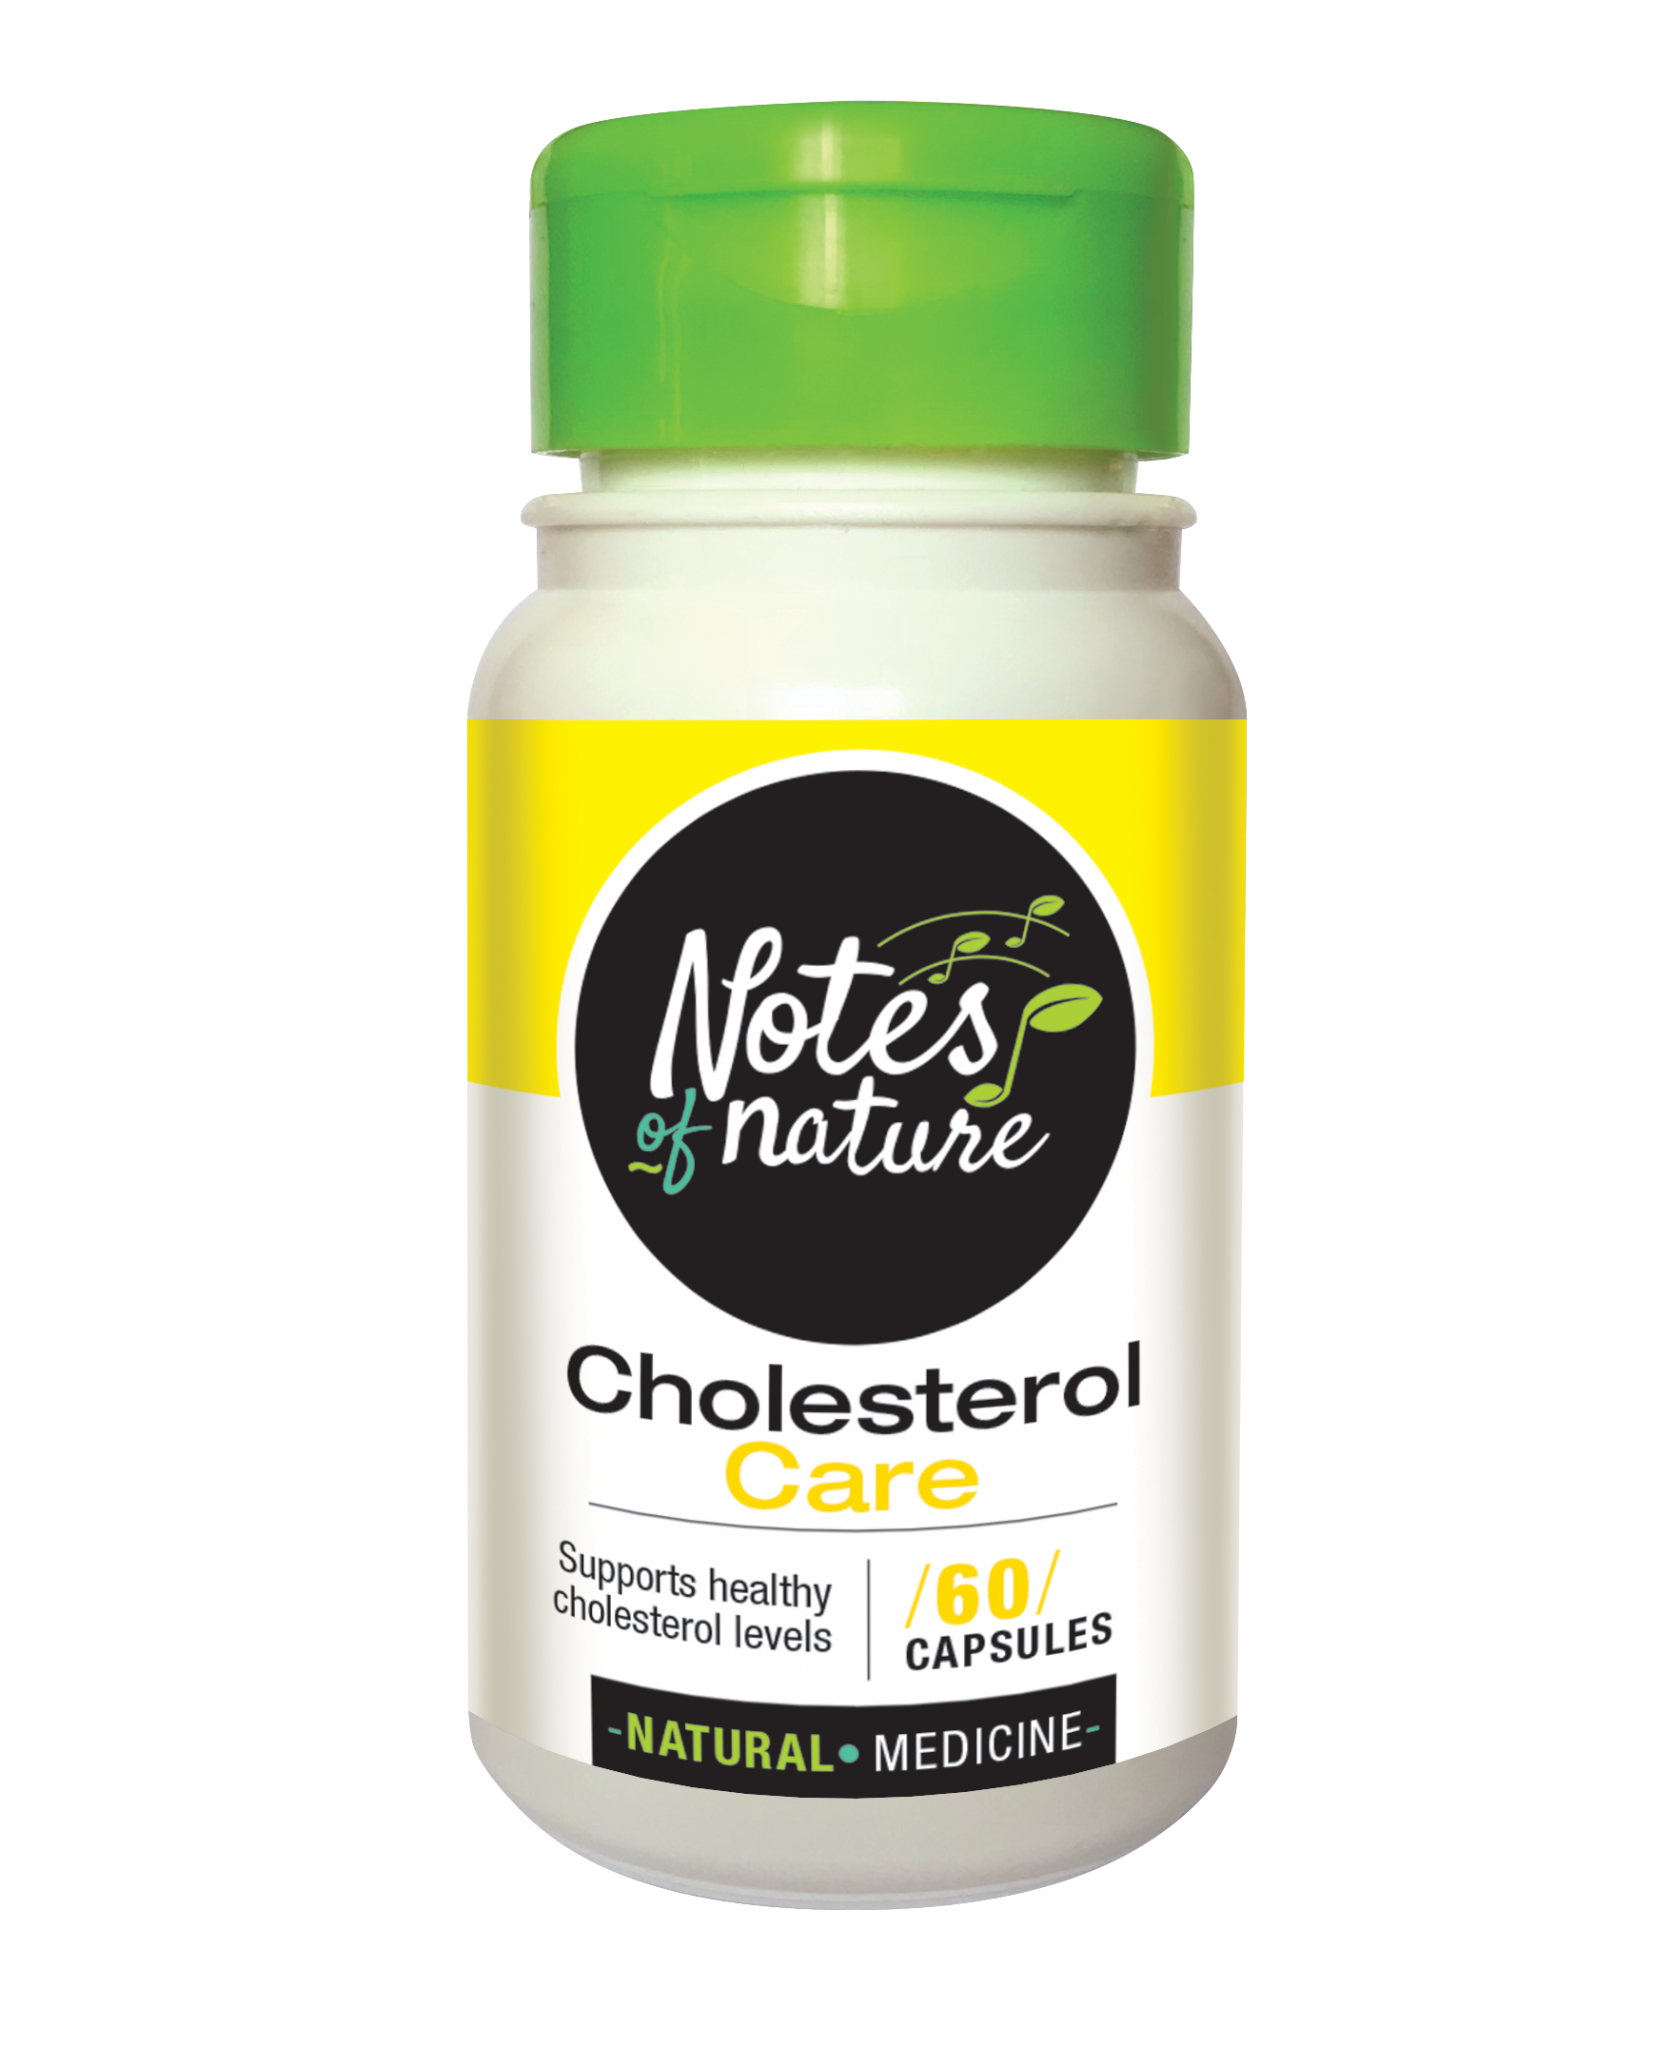 Notes of Nature Cholesterol Care